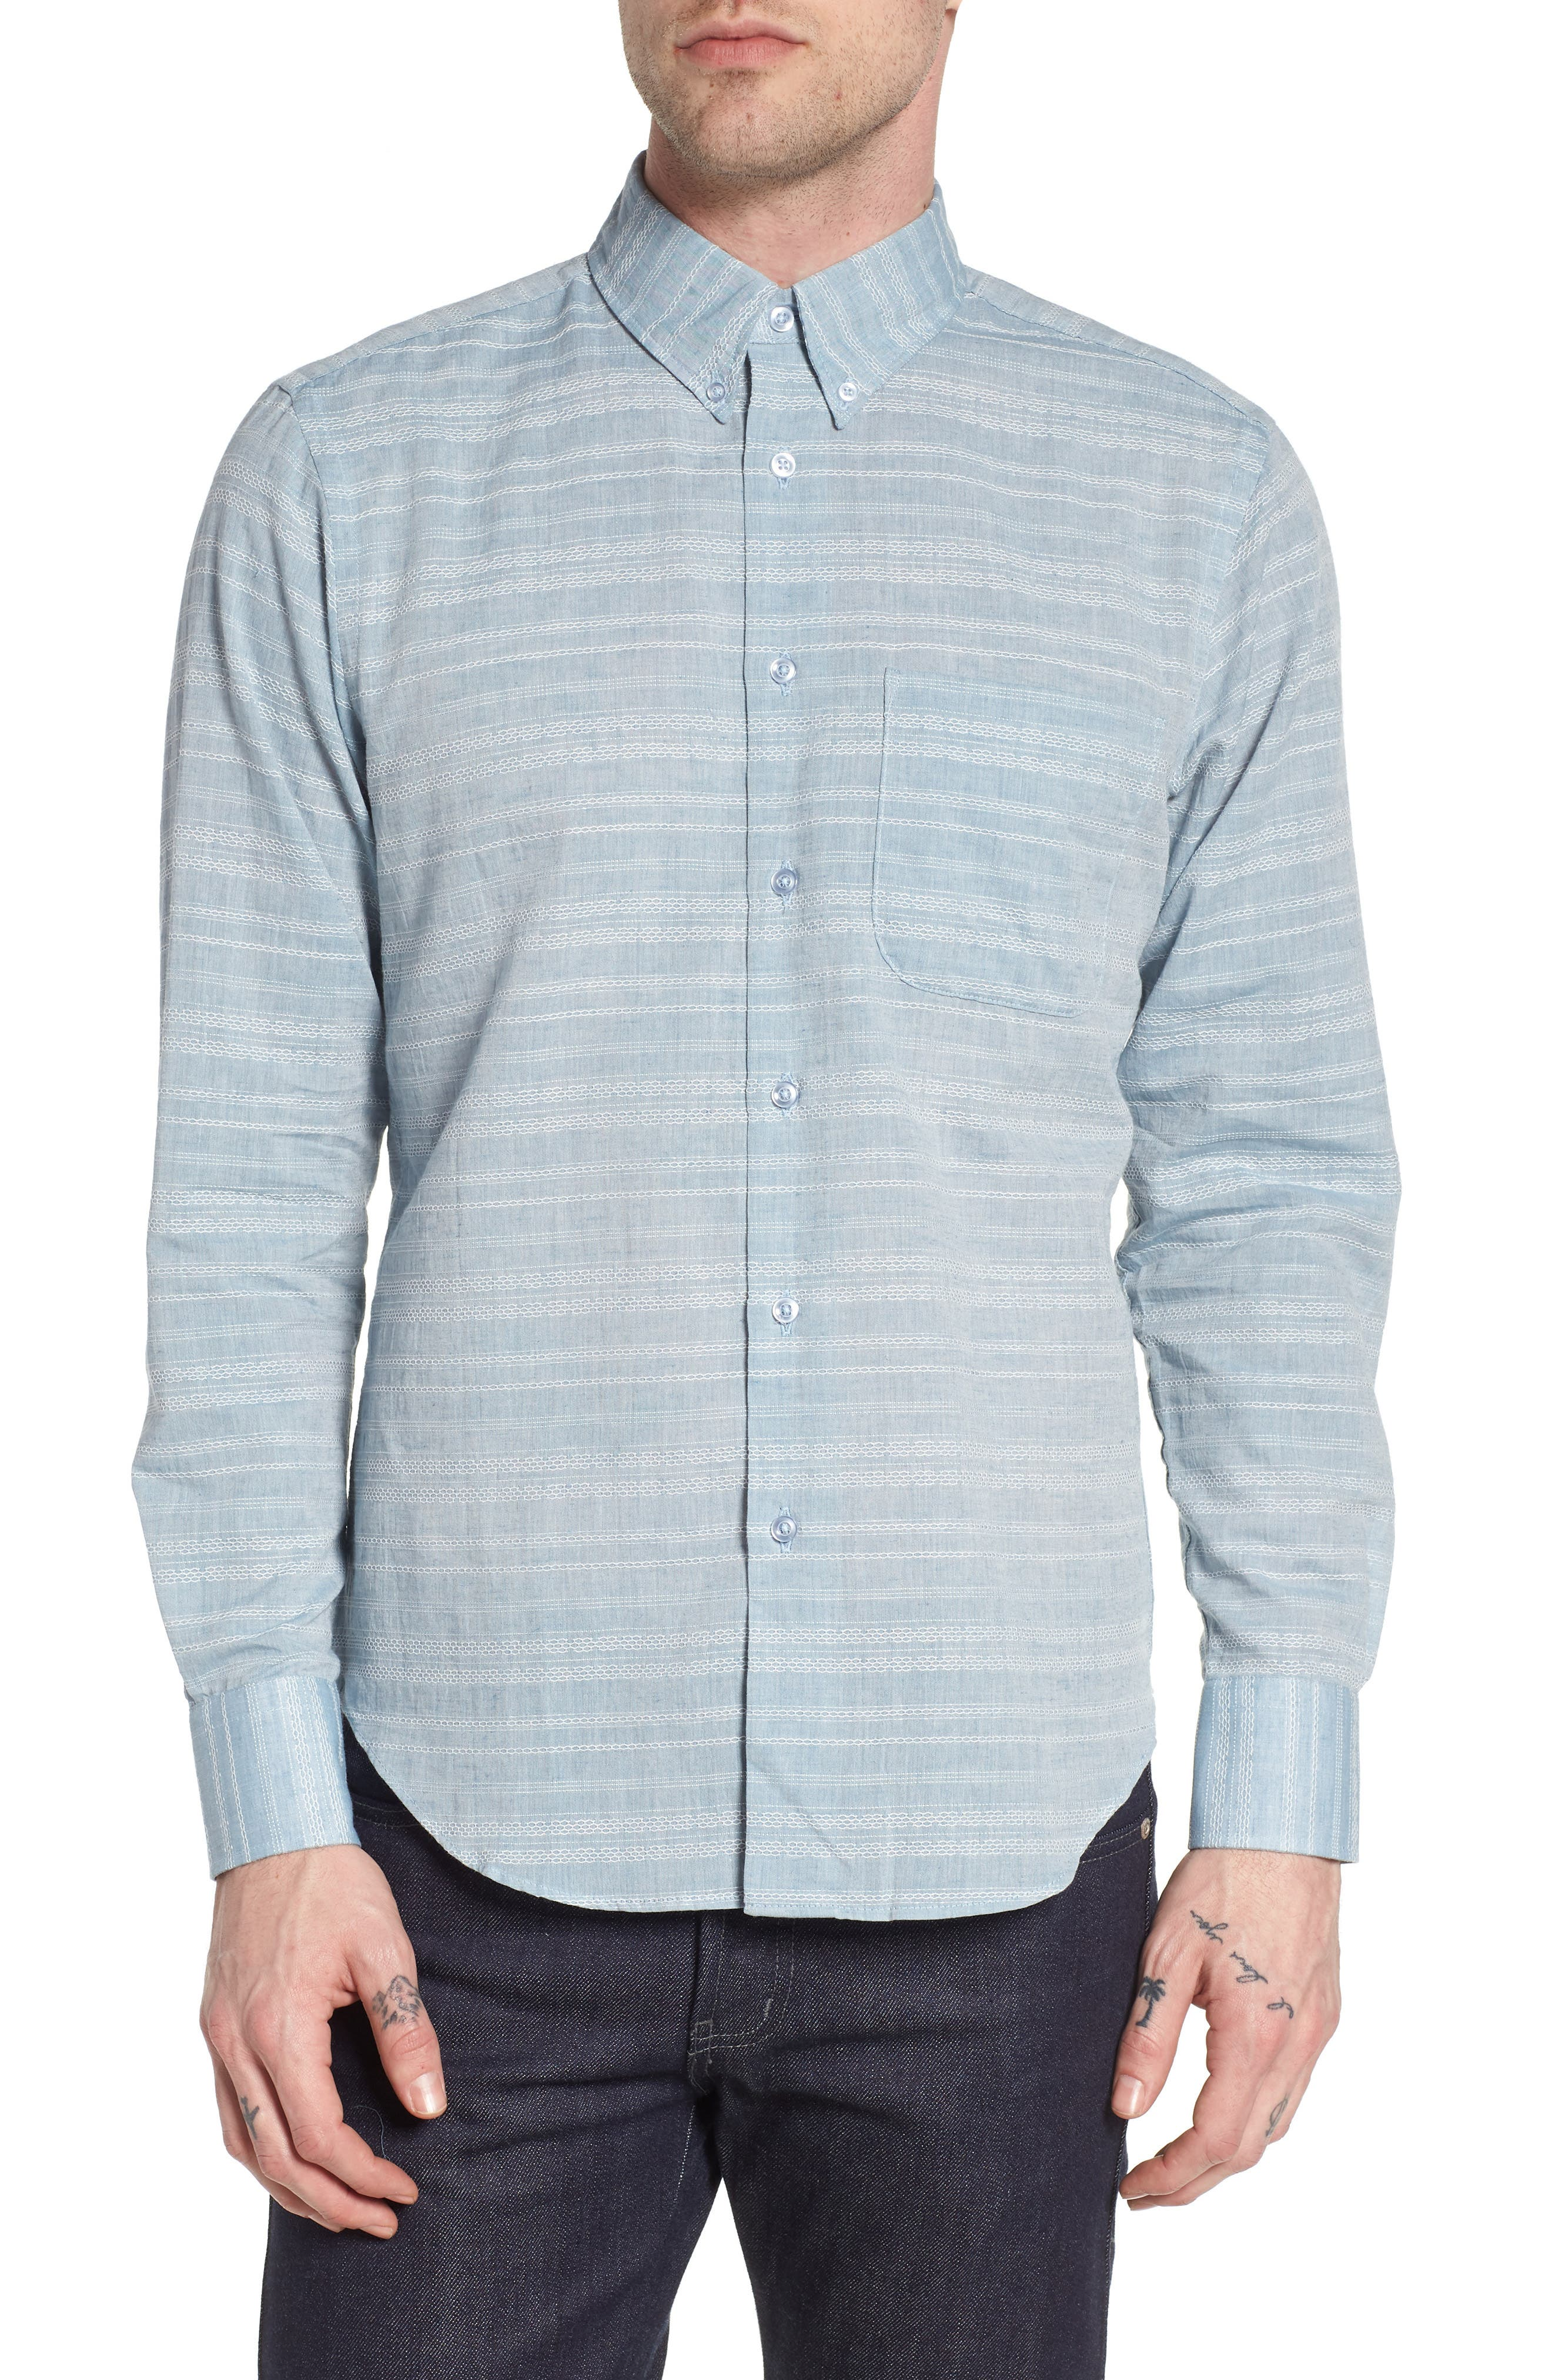 Naked & Famous Beehive Dobby Shirt,                         Main,                         color, 401